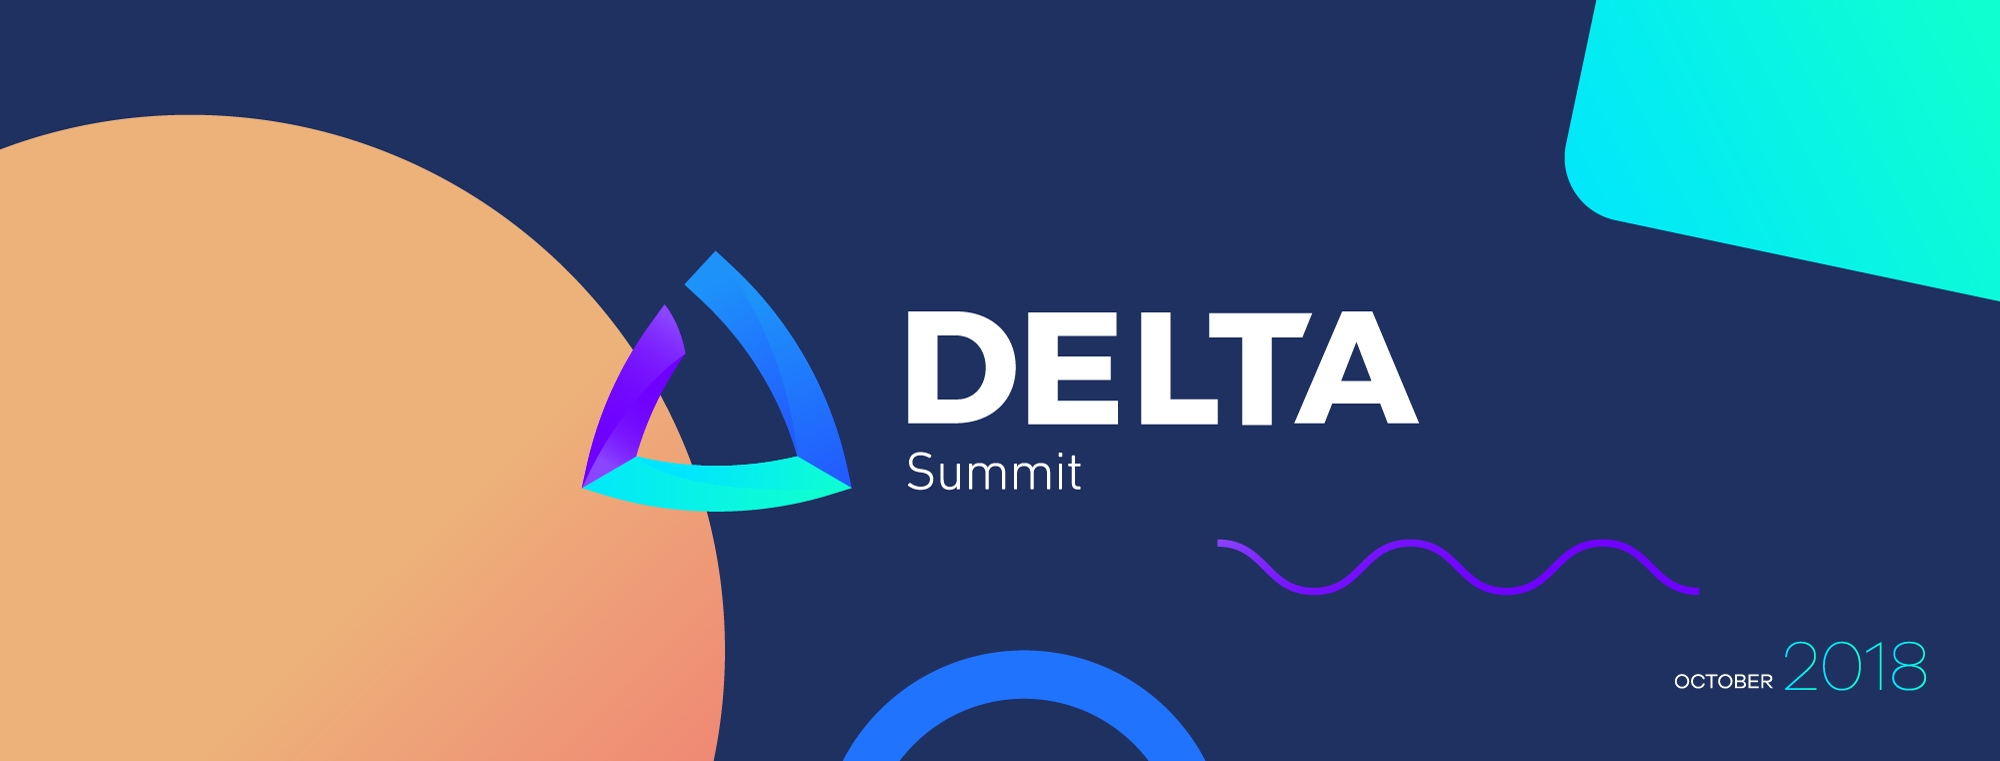 Delta Summit Flyer